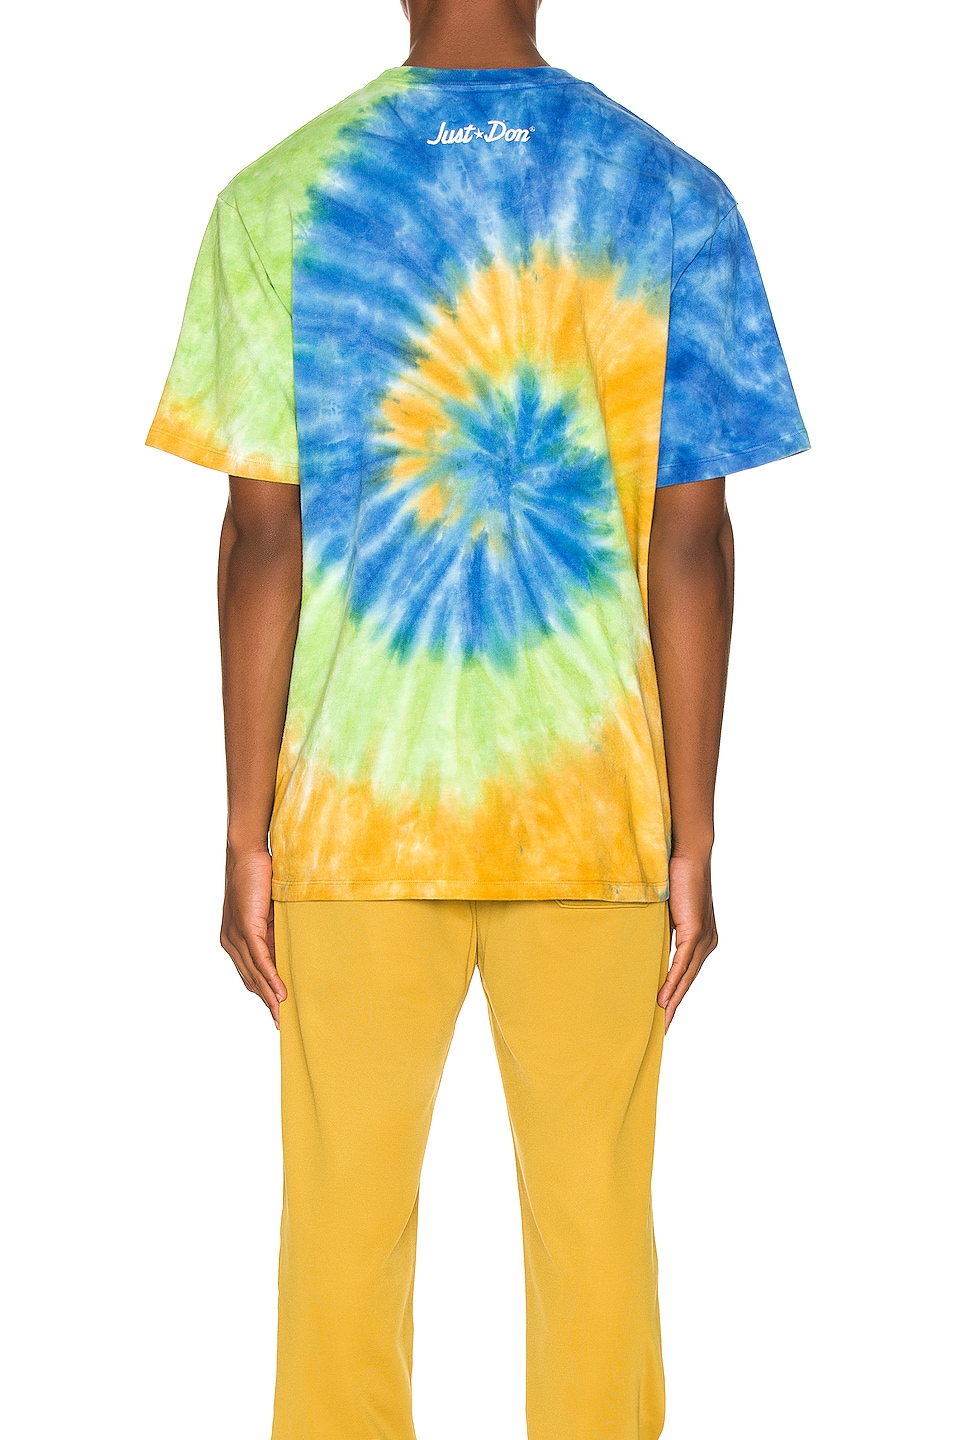 Image 4 of Just Don Lion Basketball Tee in Tie Dye